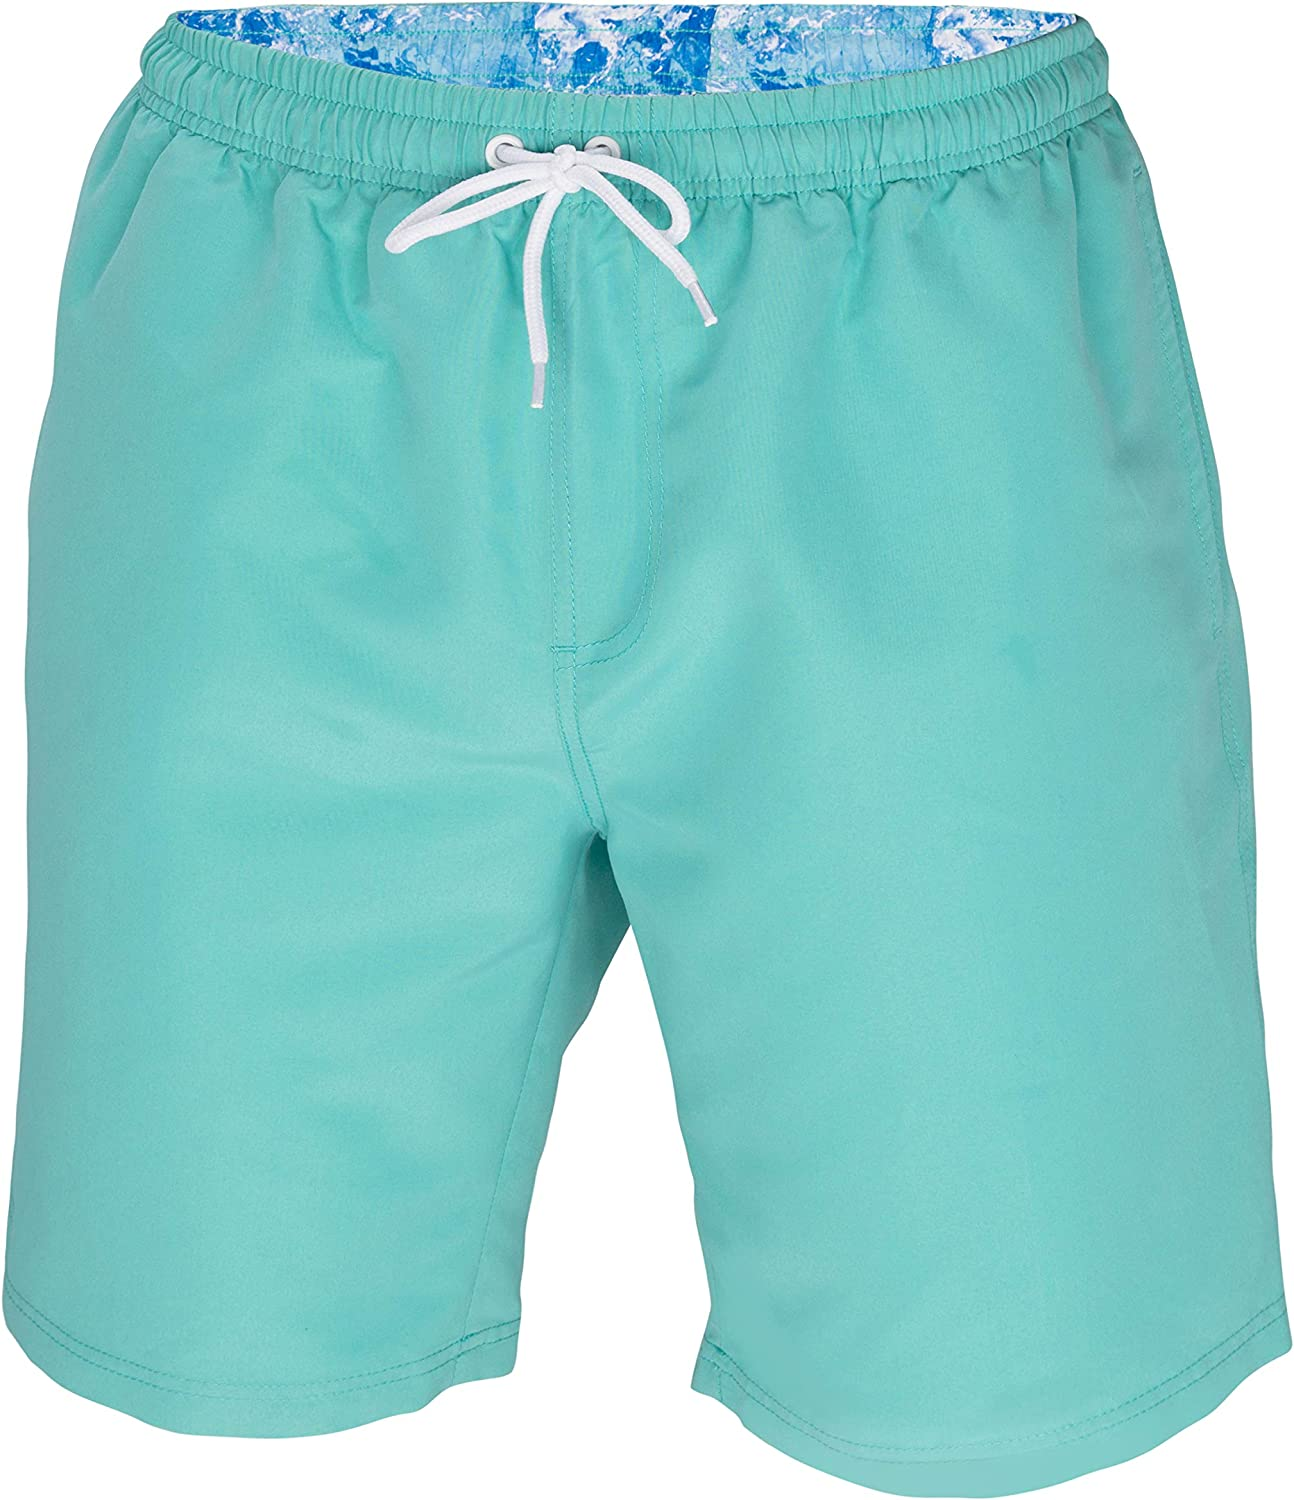 ICE CROSS Men's Swim Trunks - Quick Dry Swim Suit for Men with Pockets and Liner